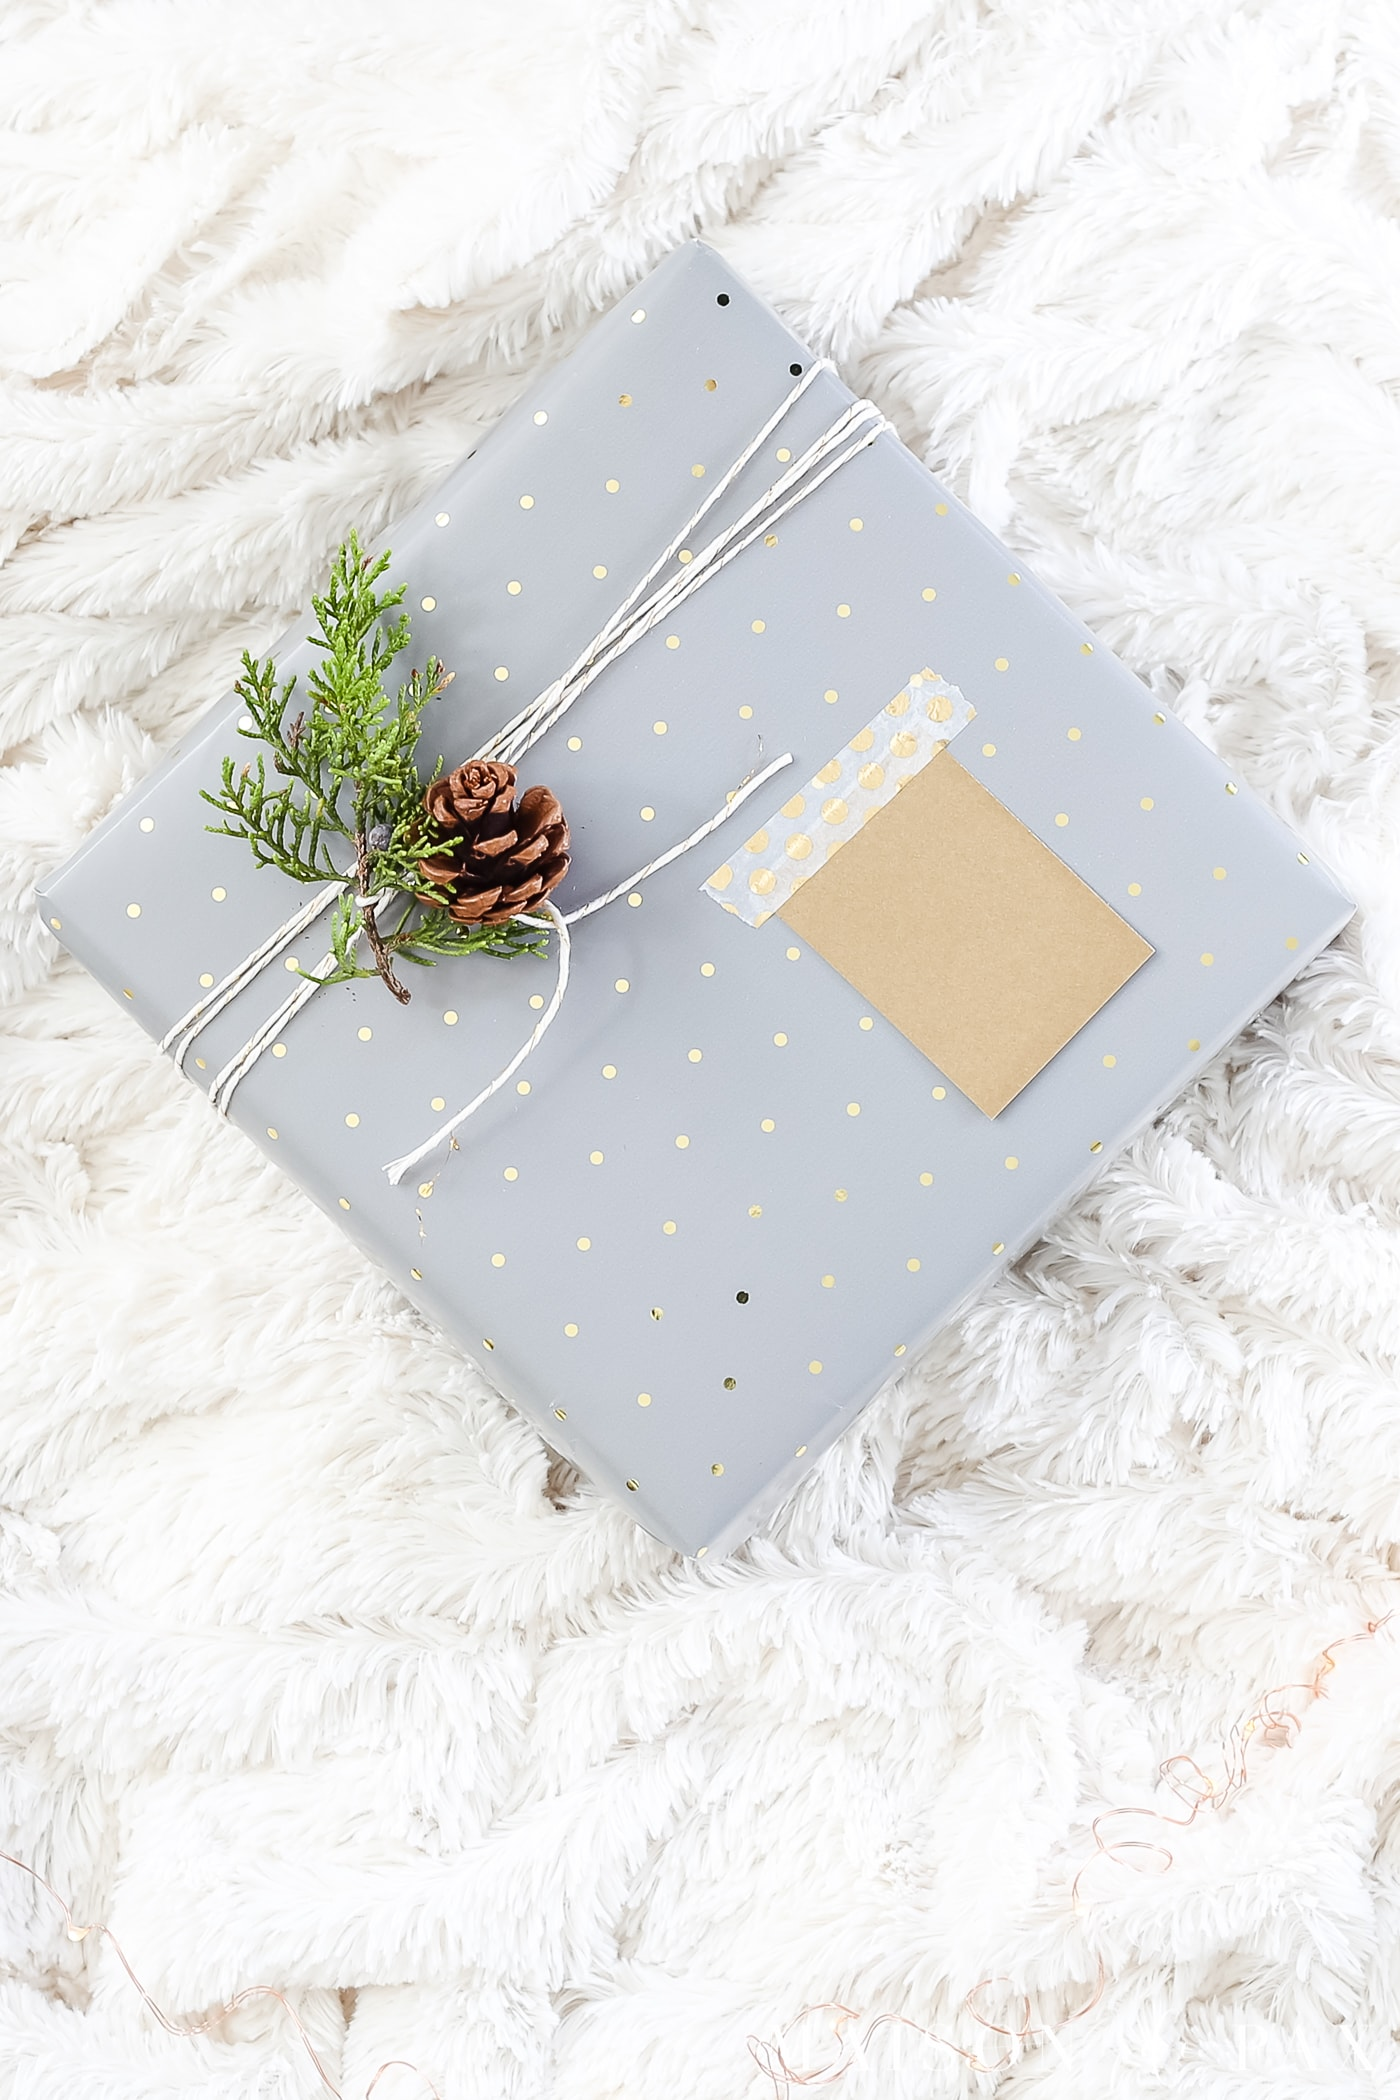 easy gift wrapping ideas: use basic baker's twine and wrap it around multiple times #christmaspresents #giftwrap